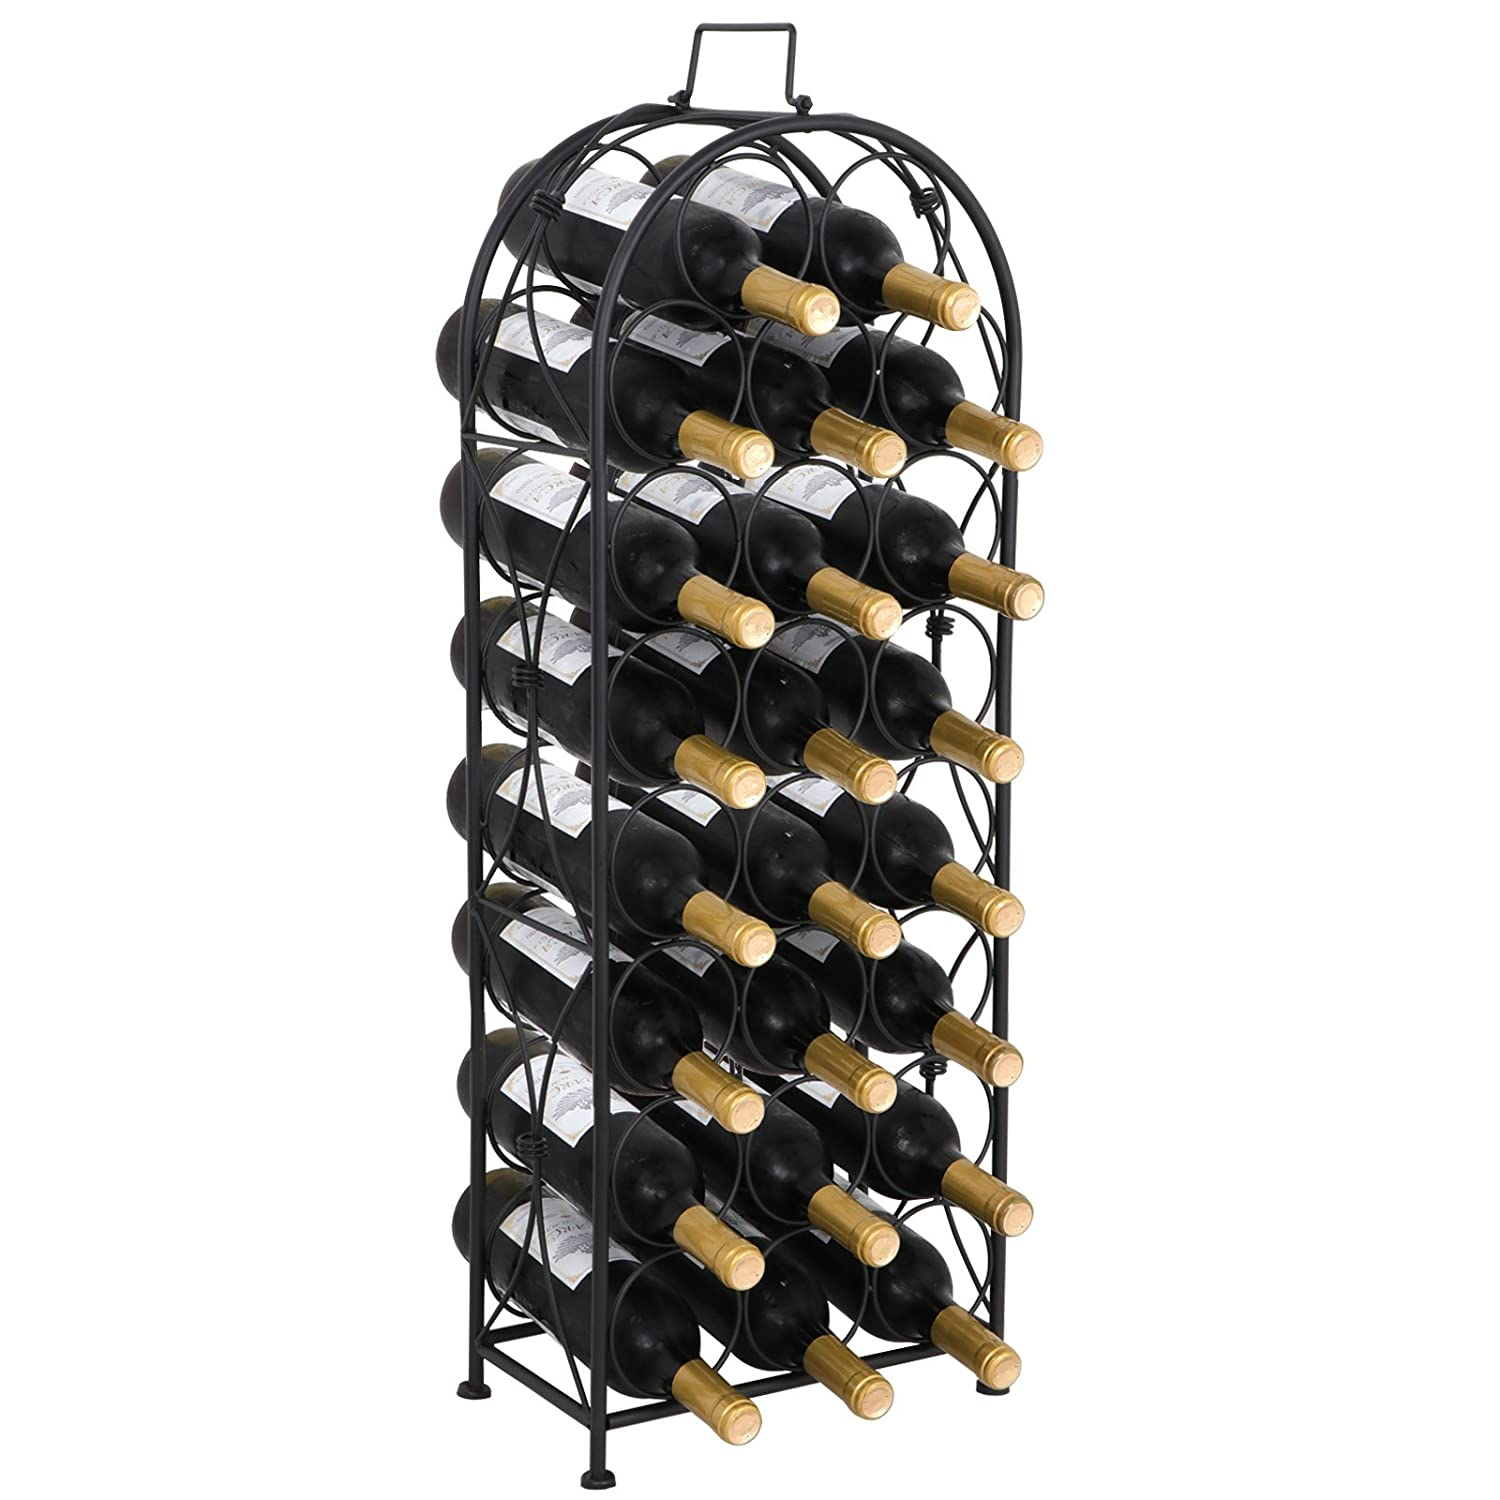 Smartxchoices 16 Bottle Black Finished Table Top Wine Rack with Glass Holder Solid Wrought Iron Floor Free Standing Wine Organizer Rack Cabinet Kitchen …